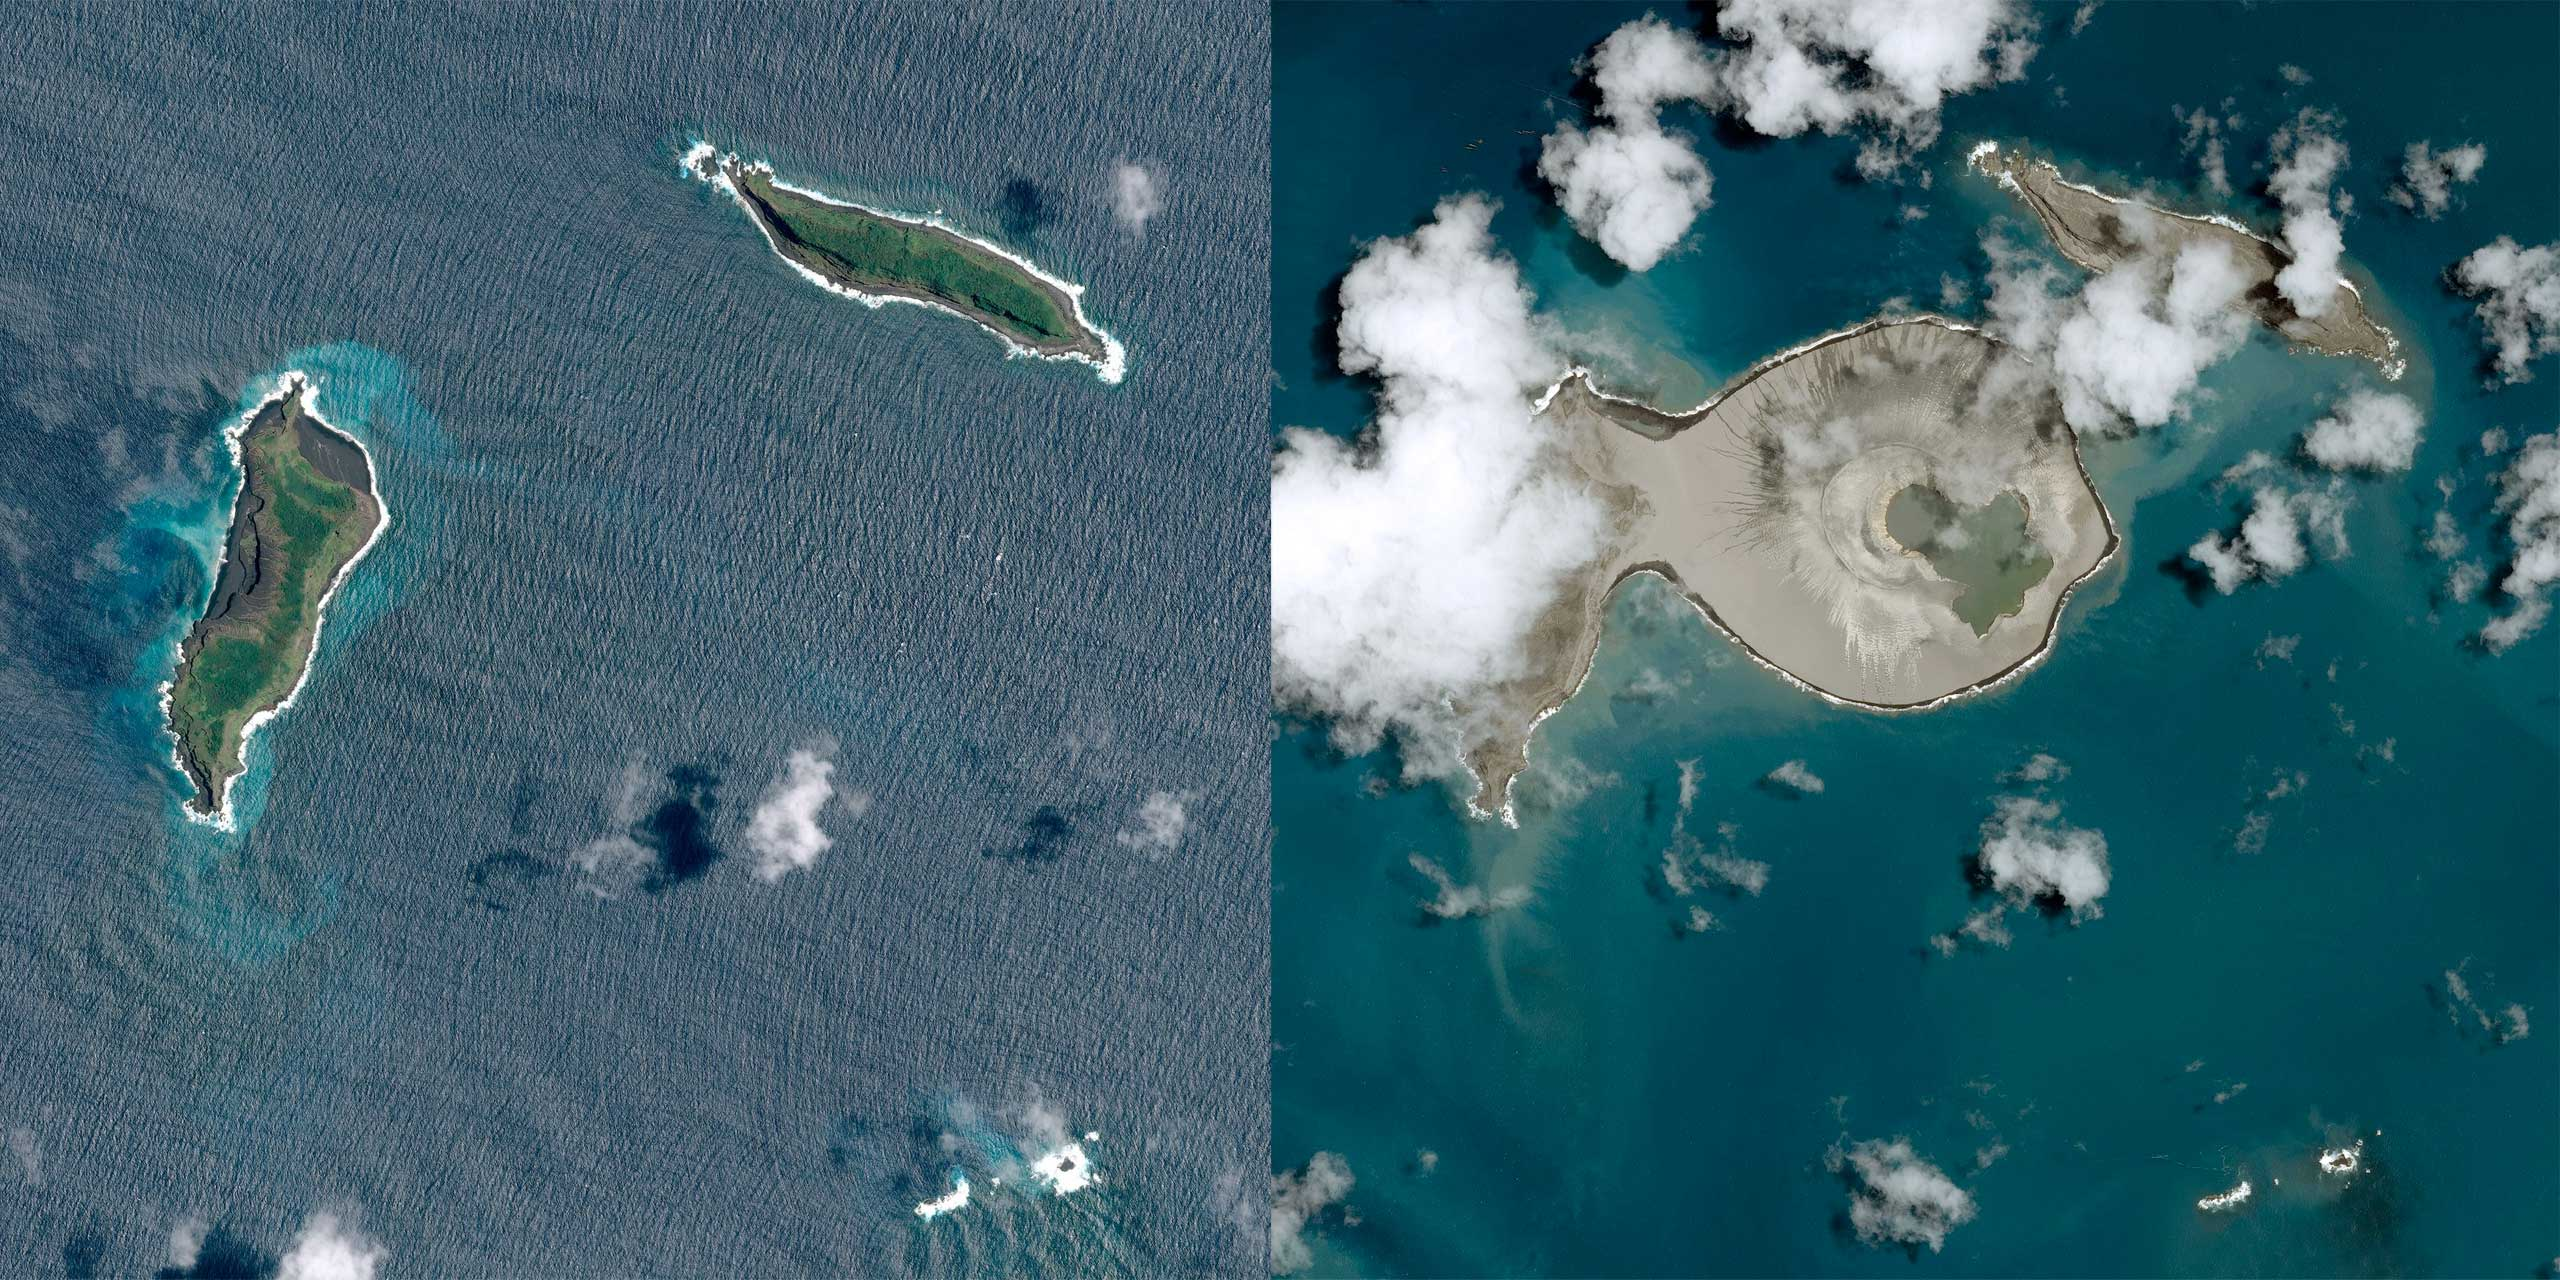 This diptych shows before and after satellite views of a new island, created when the island on the left fused with a volcanic crater, off the coast of Tonga. The pre-eruption satellite view before the island on the left became fused with the volcanic crater created by Hunga Tonga.